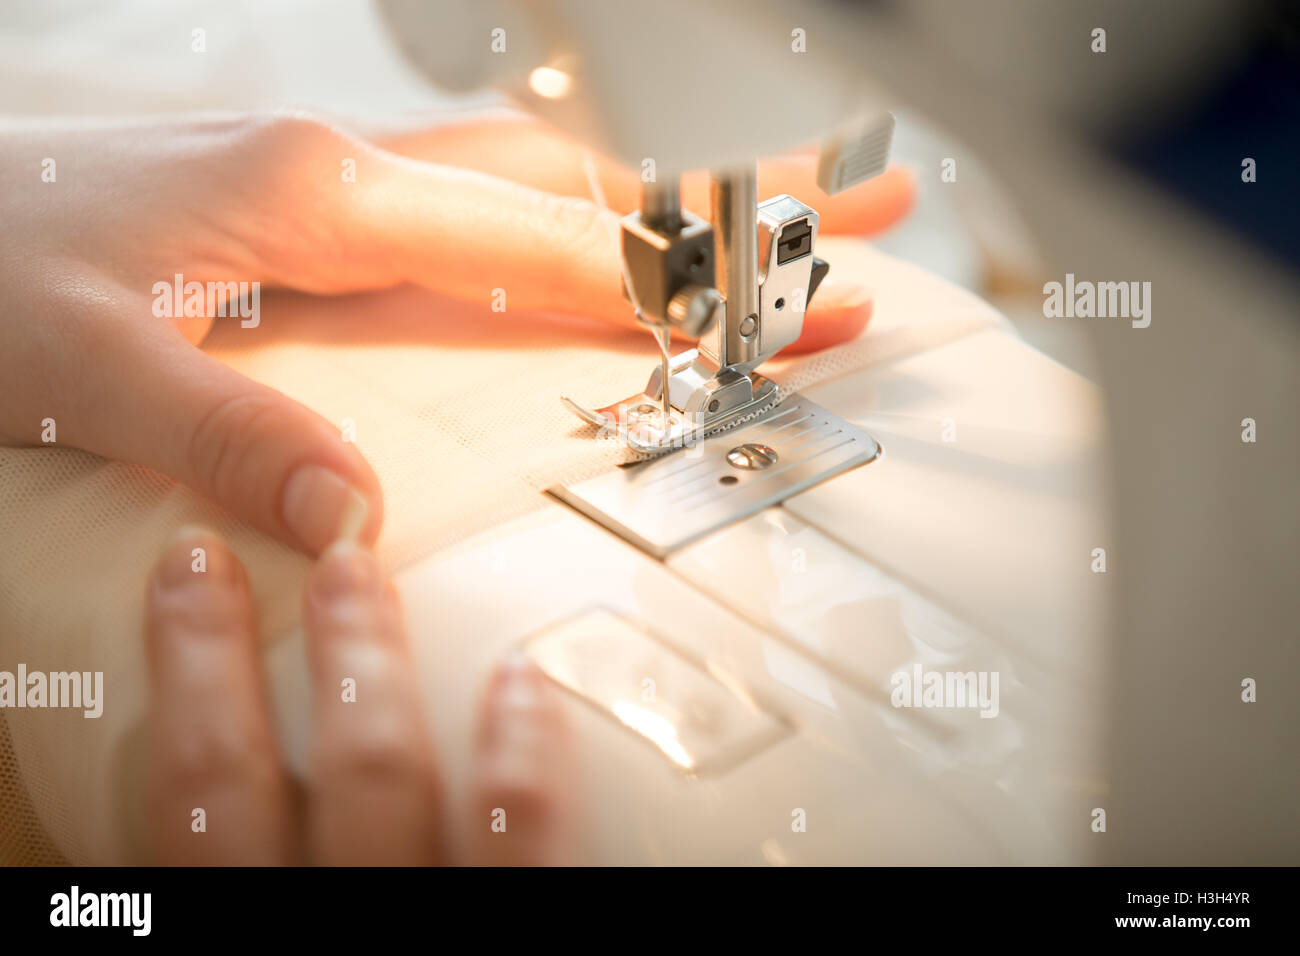 Hands at sewing machine - Stock Image